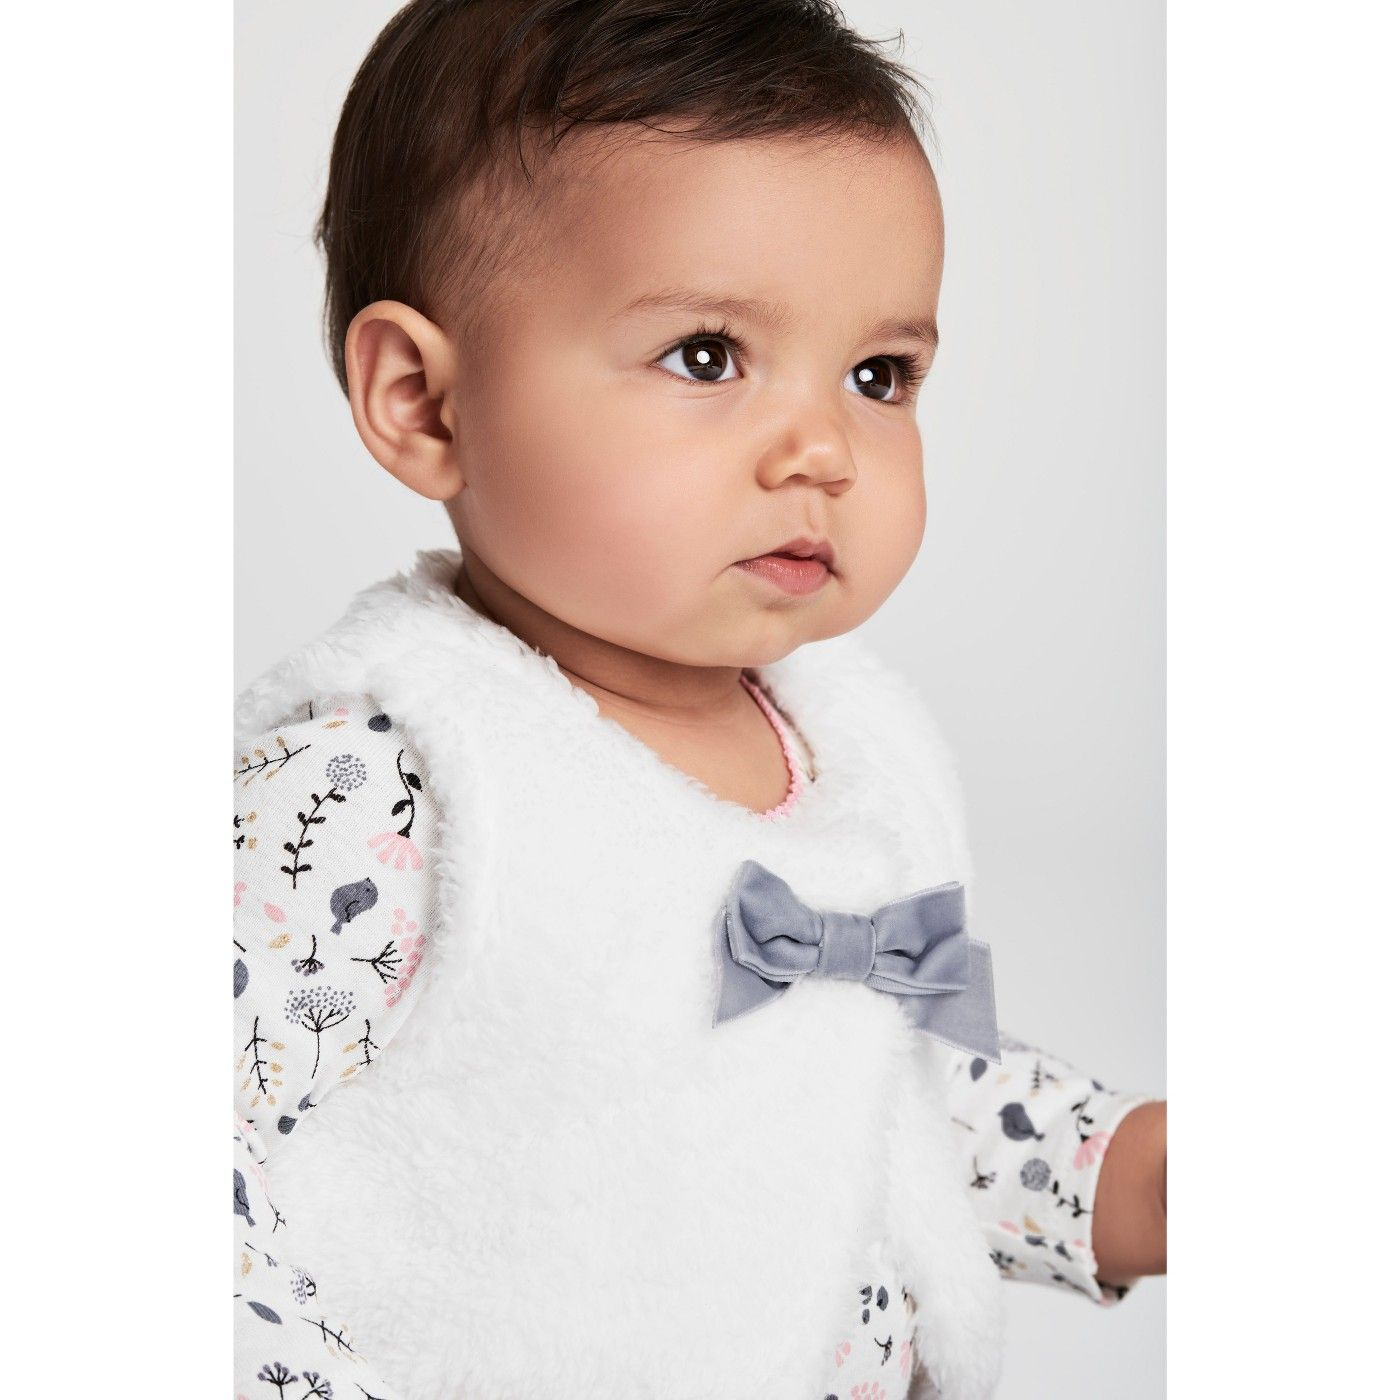 27f0dfe24 Adorable Fluffy Baby Vest and matching onesie and leggings! Baby ...